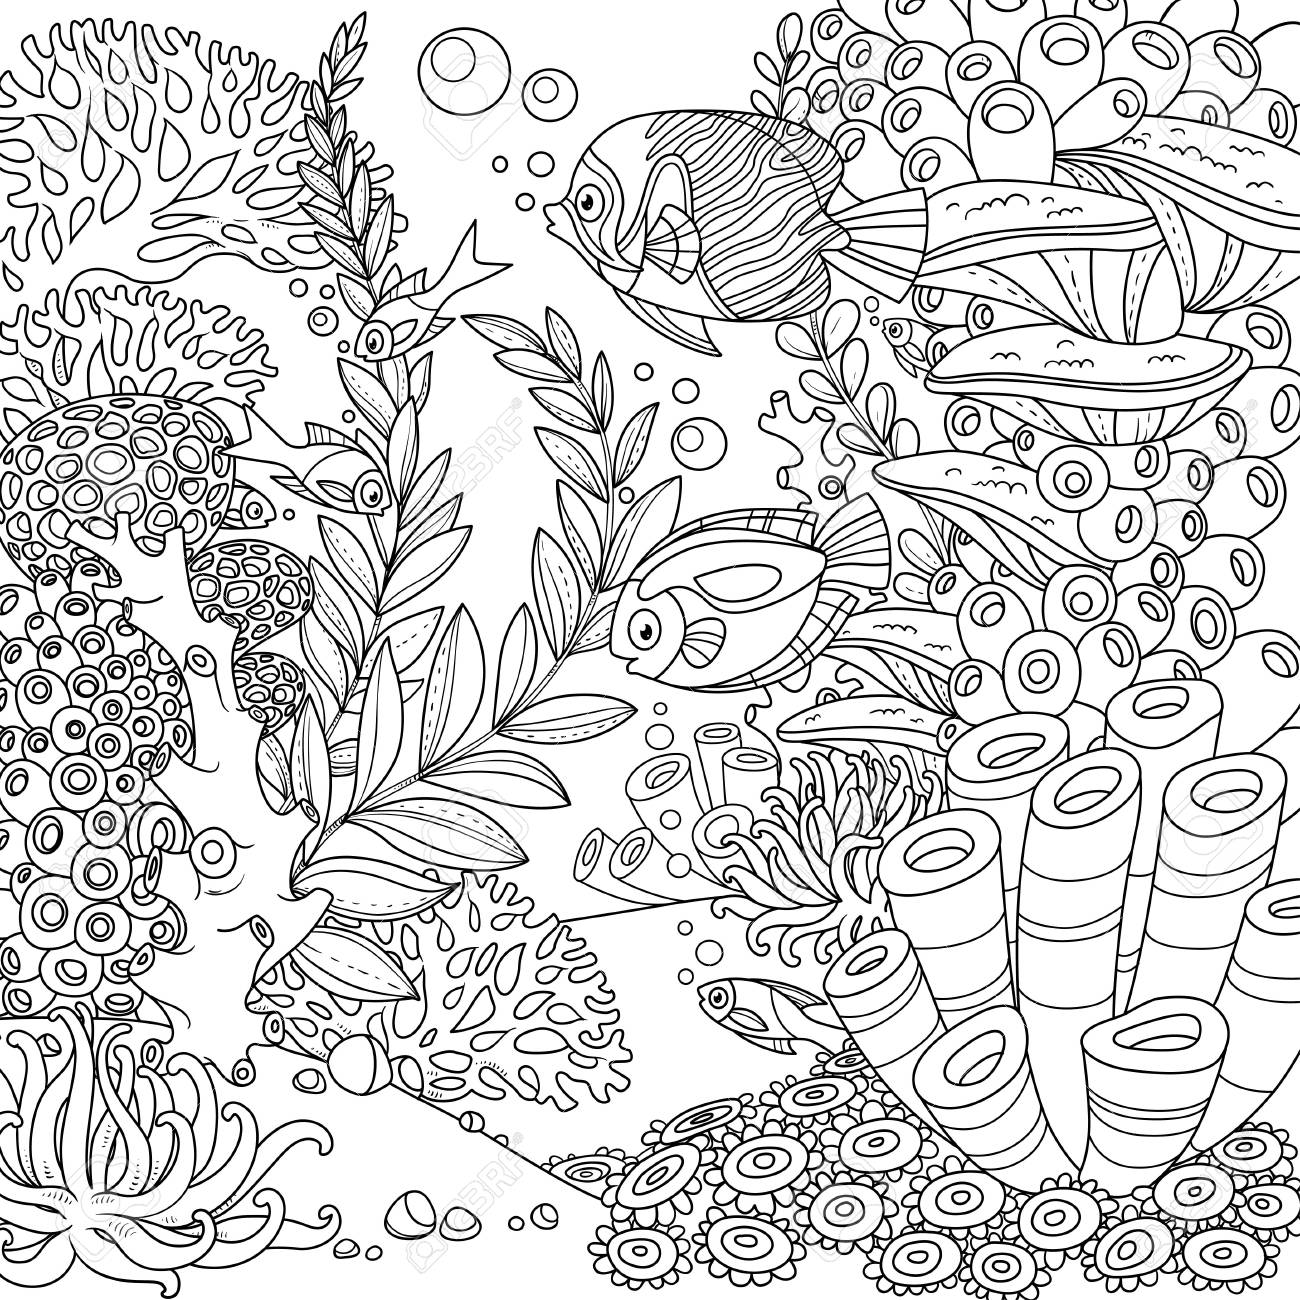 Cartoon underwater world with corals and fishes outlined isolated on white - 120218144